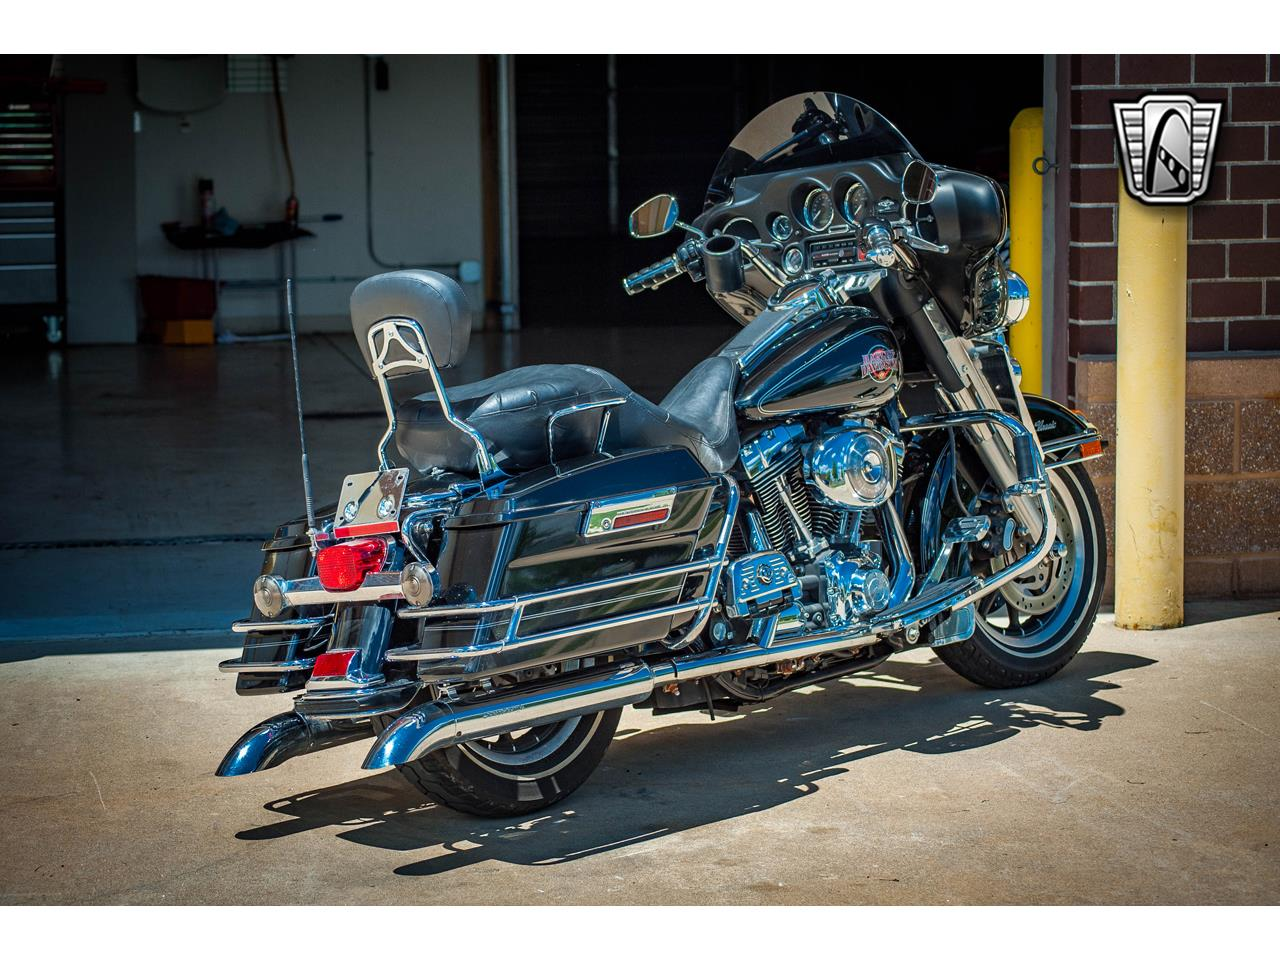 2004 Harley-Davidson Motorcycle for sale in O'Fallon, IL – photo 49